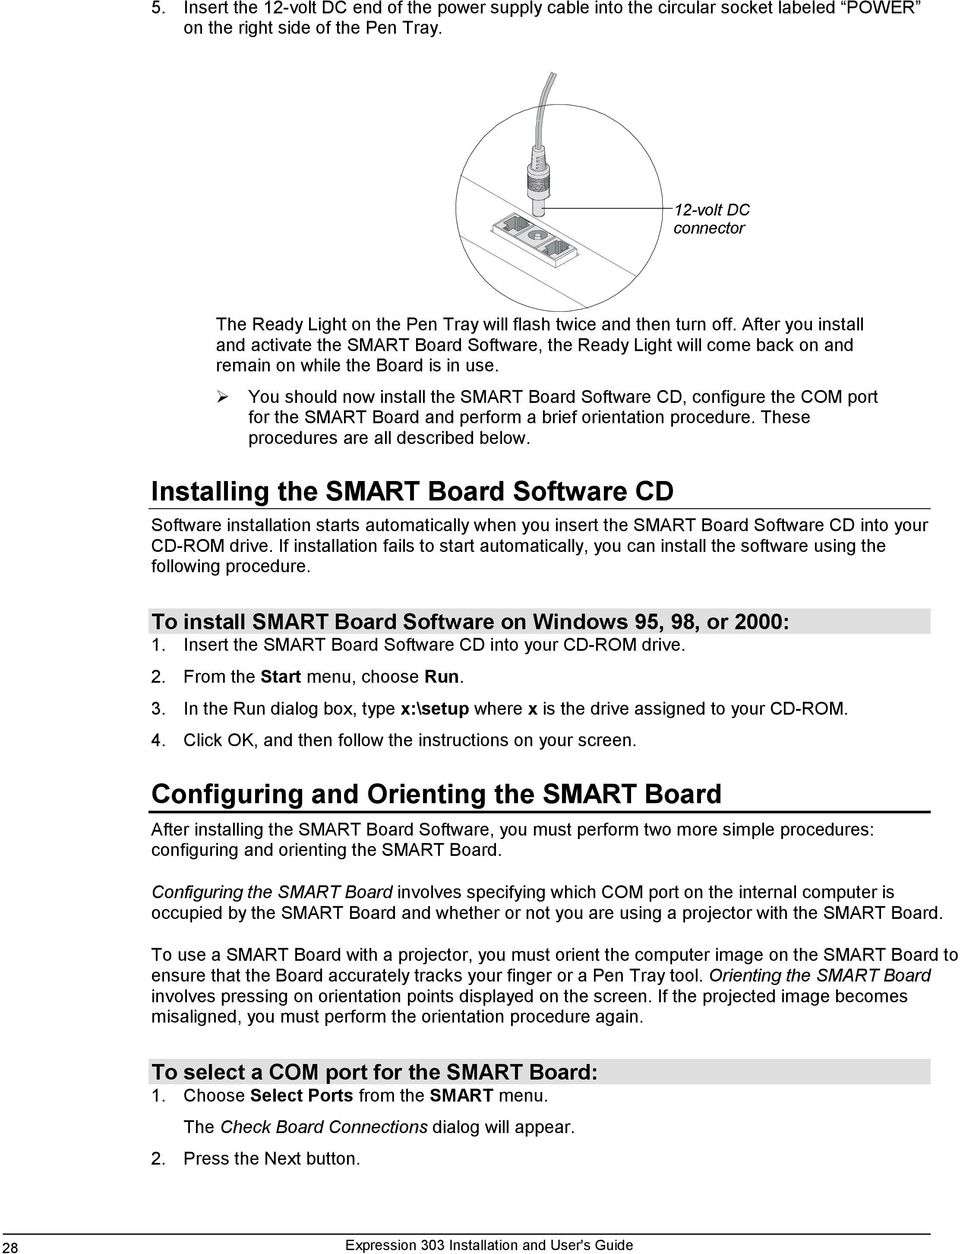 After you install and activate the SMAT Board Software, the eady ight will come back on and remain on while the Board is in use.